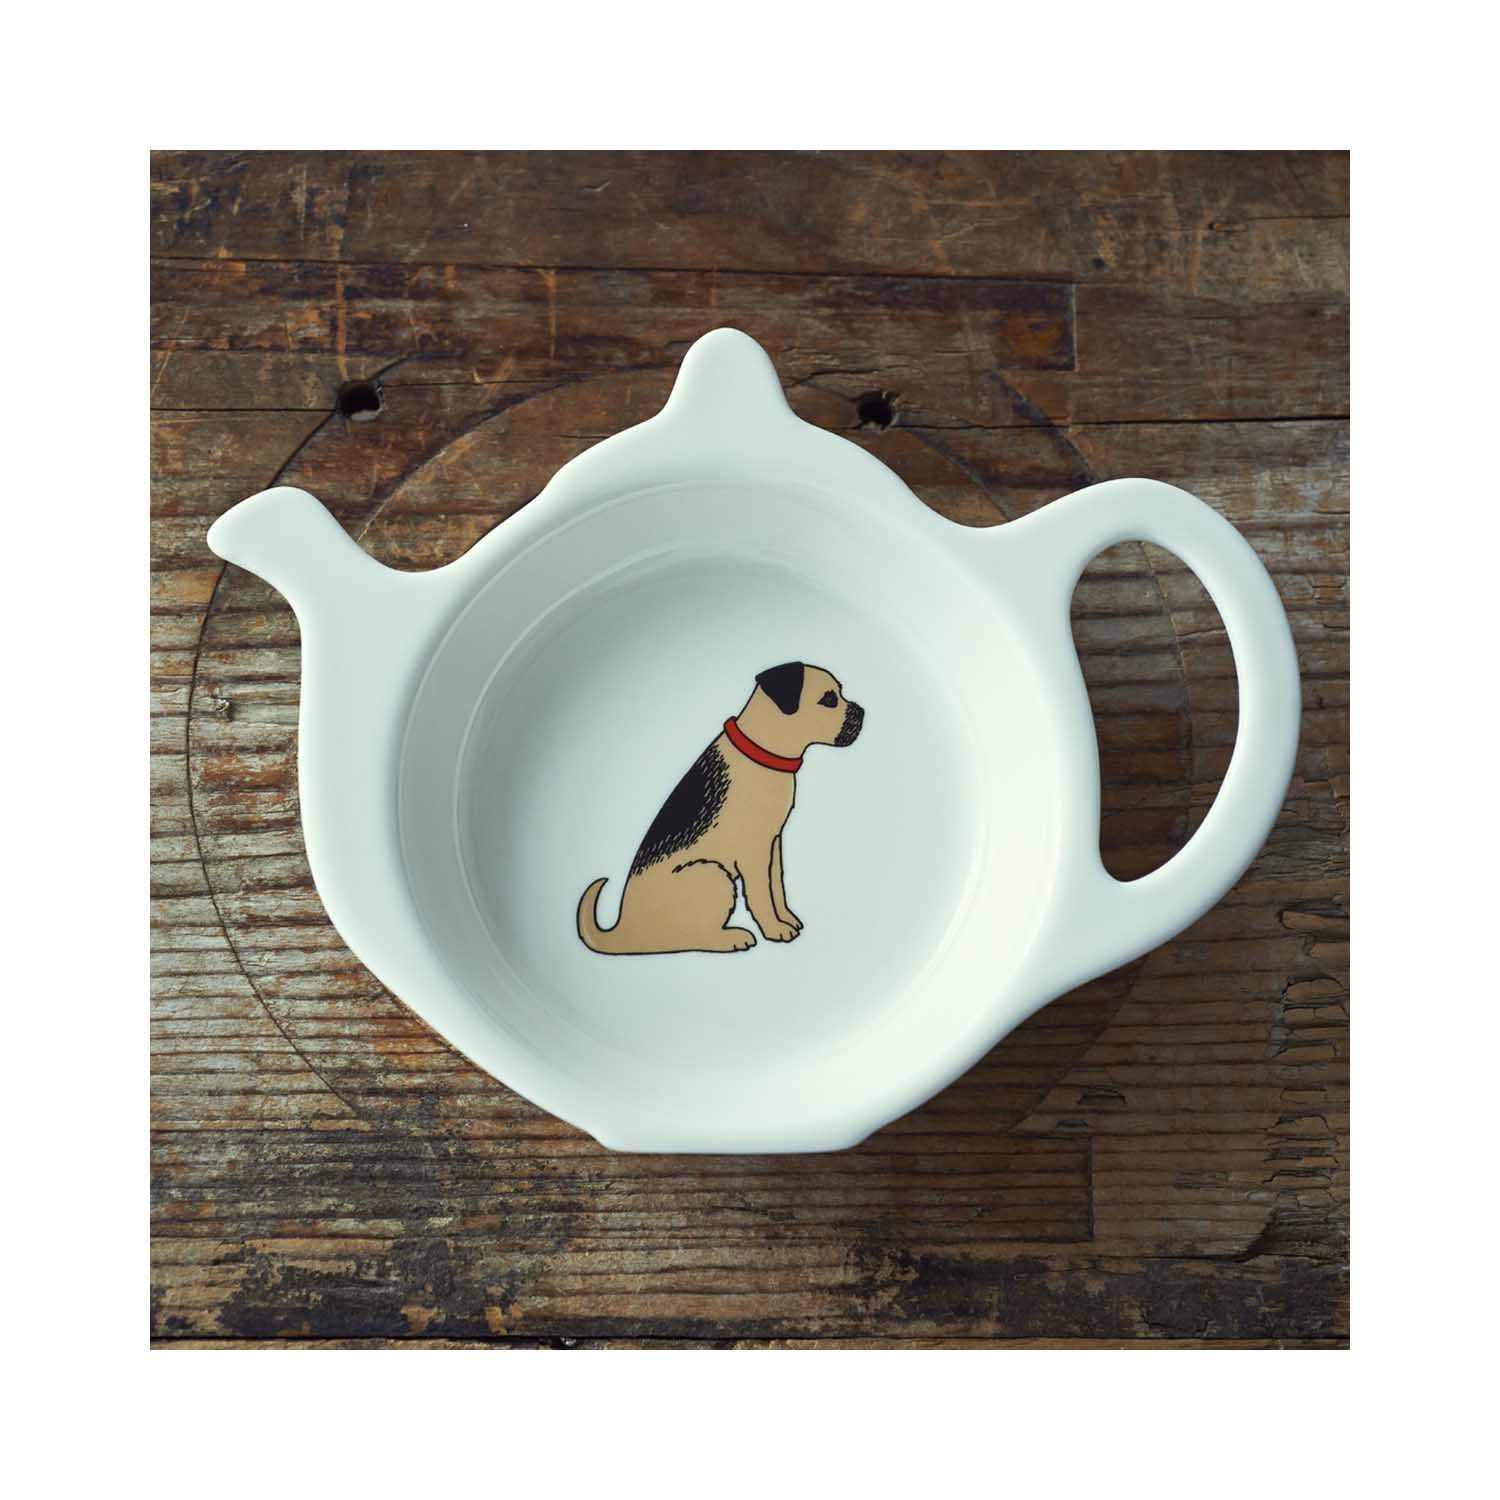 Dog Lover Gifts available at Dog Krazy Gifts - Bertie the Border Terrier Teabag Dish - part of the Sweet William range available from www.DogKrazyGifts.co.uk